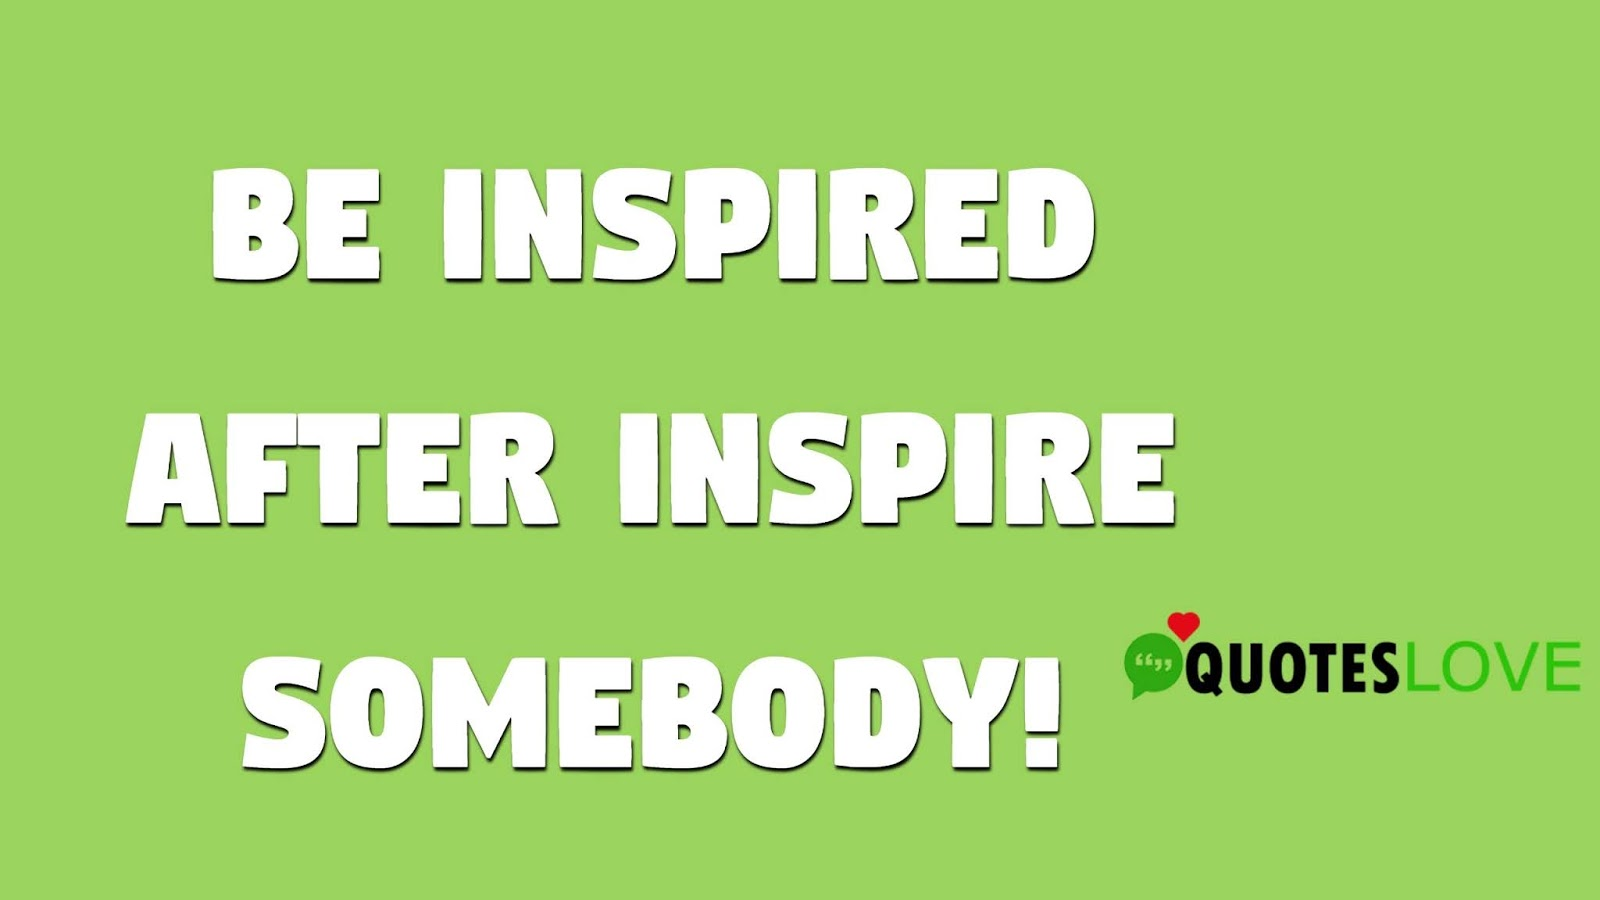 Be inspired after inspire somebody!